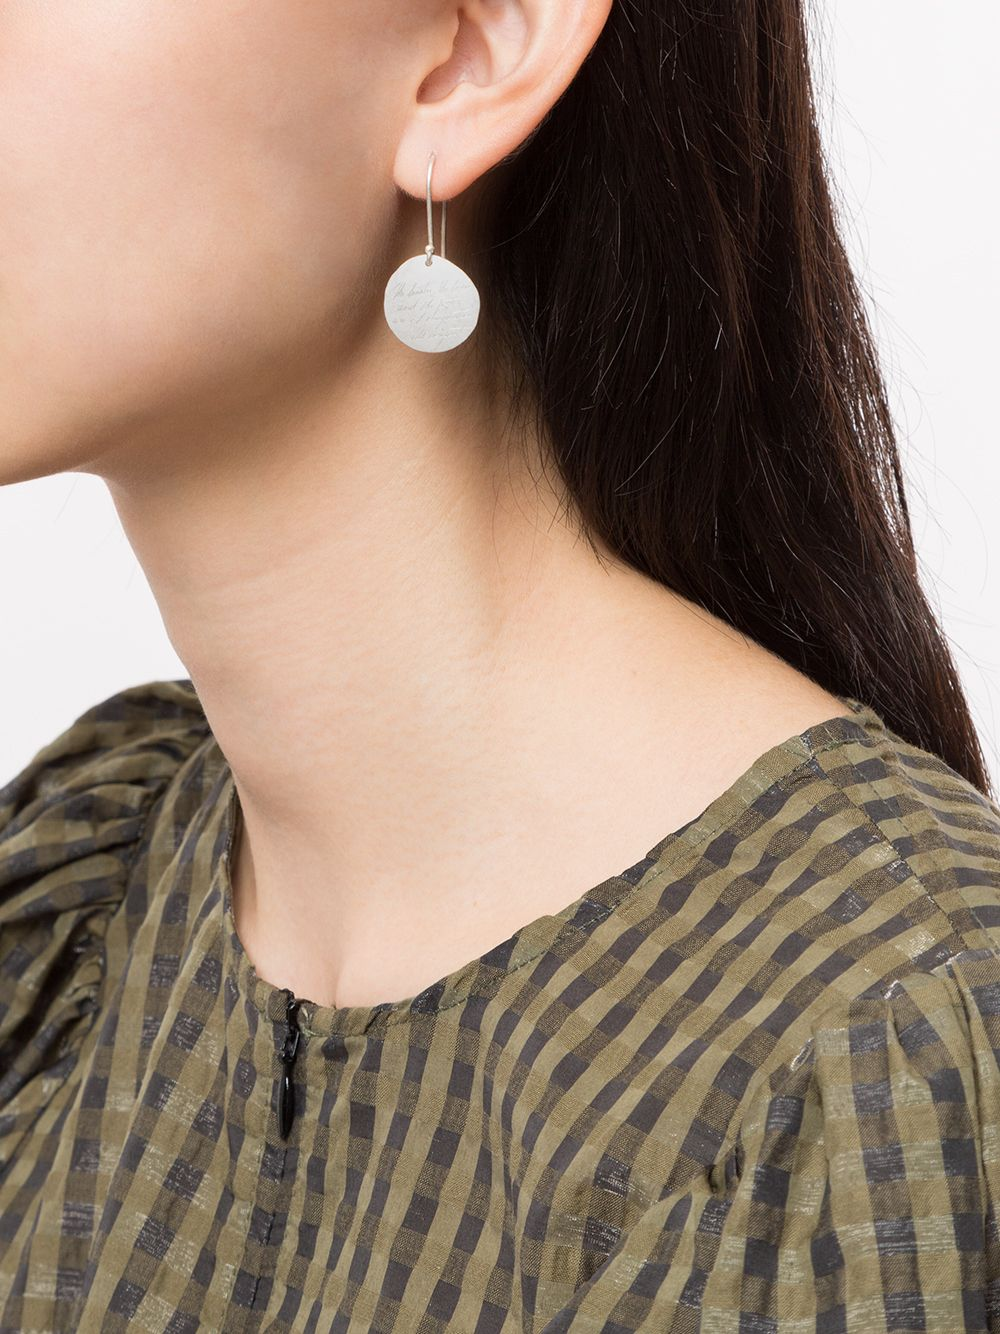 UMA WANG X DETAJ ROUND LUNA EARRING WITH HAND CARVED MESSEGE